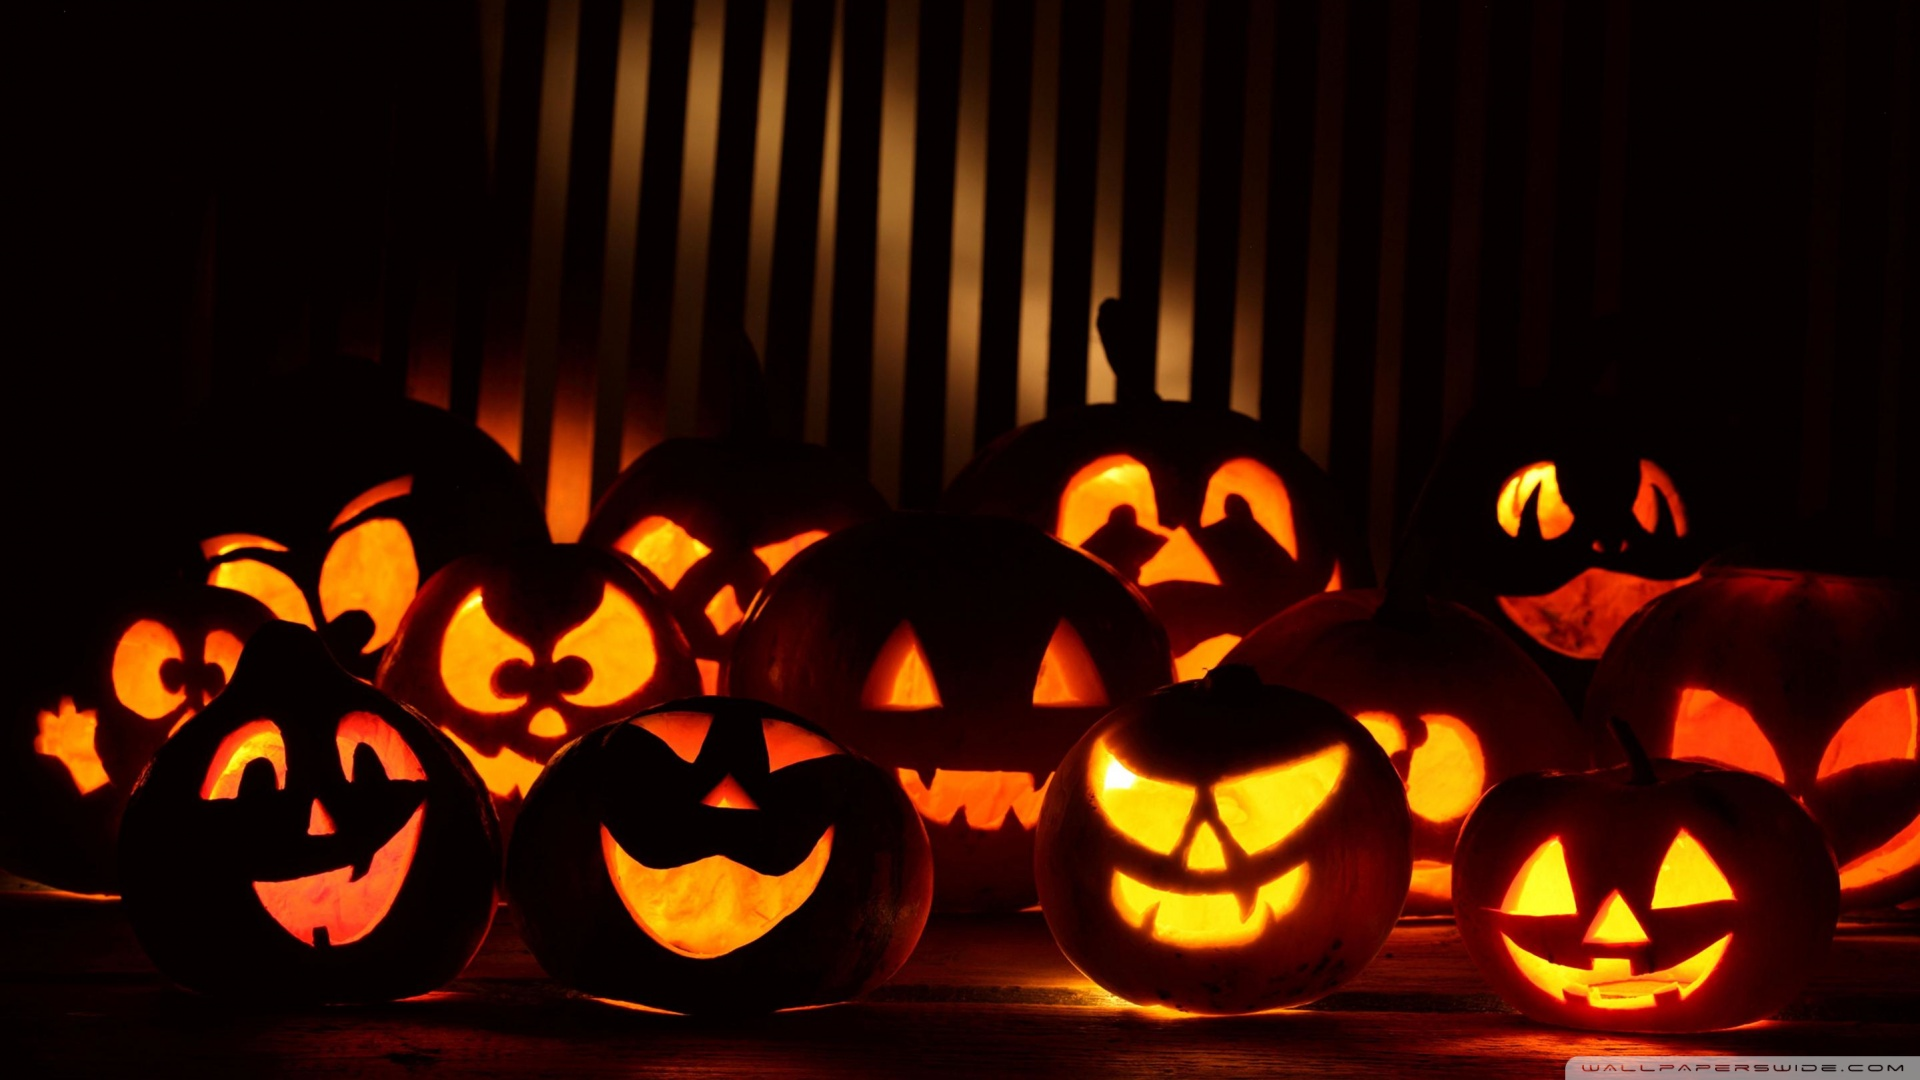 Happy Halloween HD desktop wallpaper : High Definition